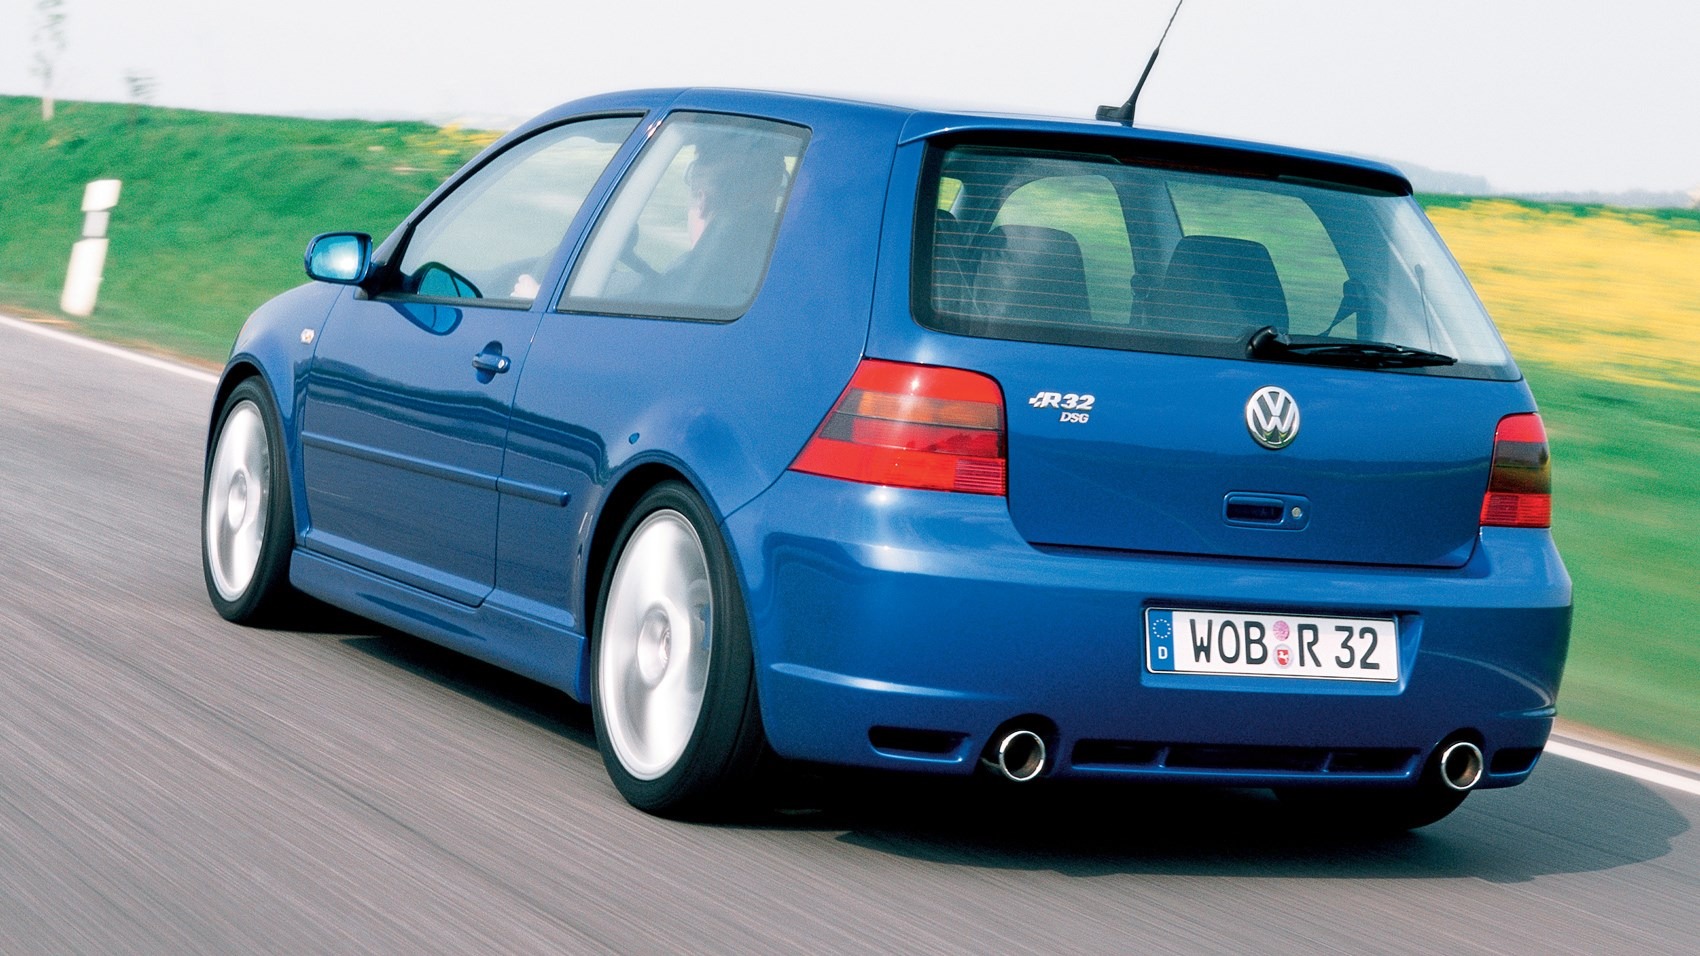 driving the classics volkswagen golf r32 mk4 (2002) review carvw golf r32 rear tracking